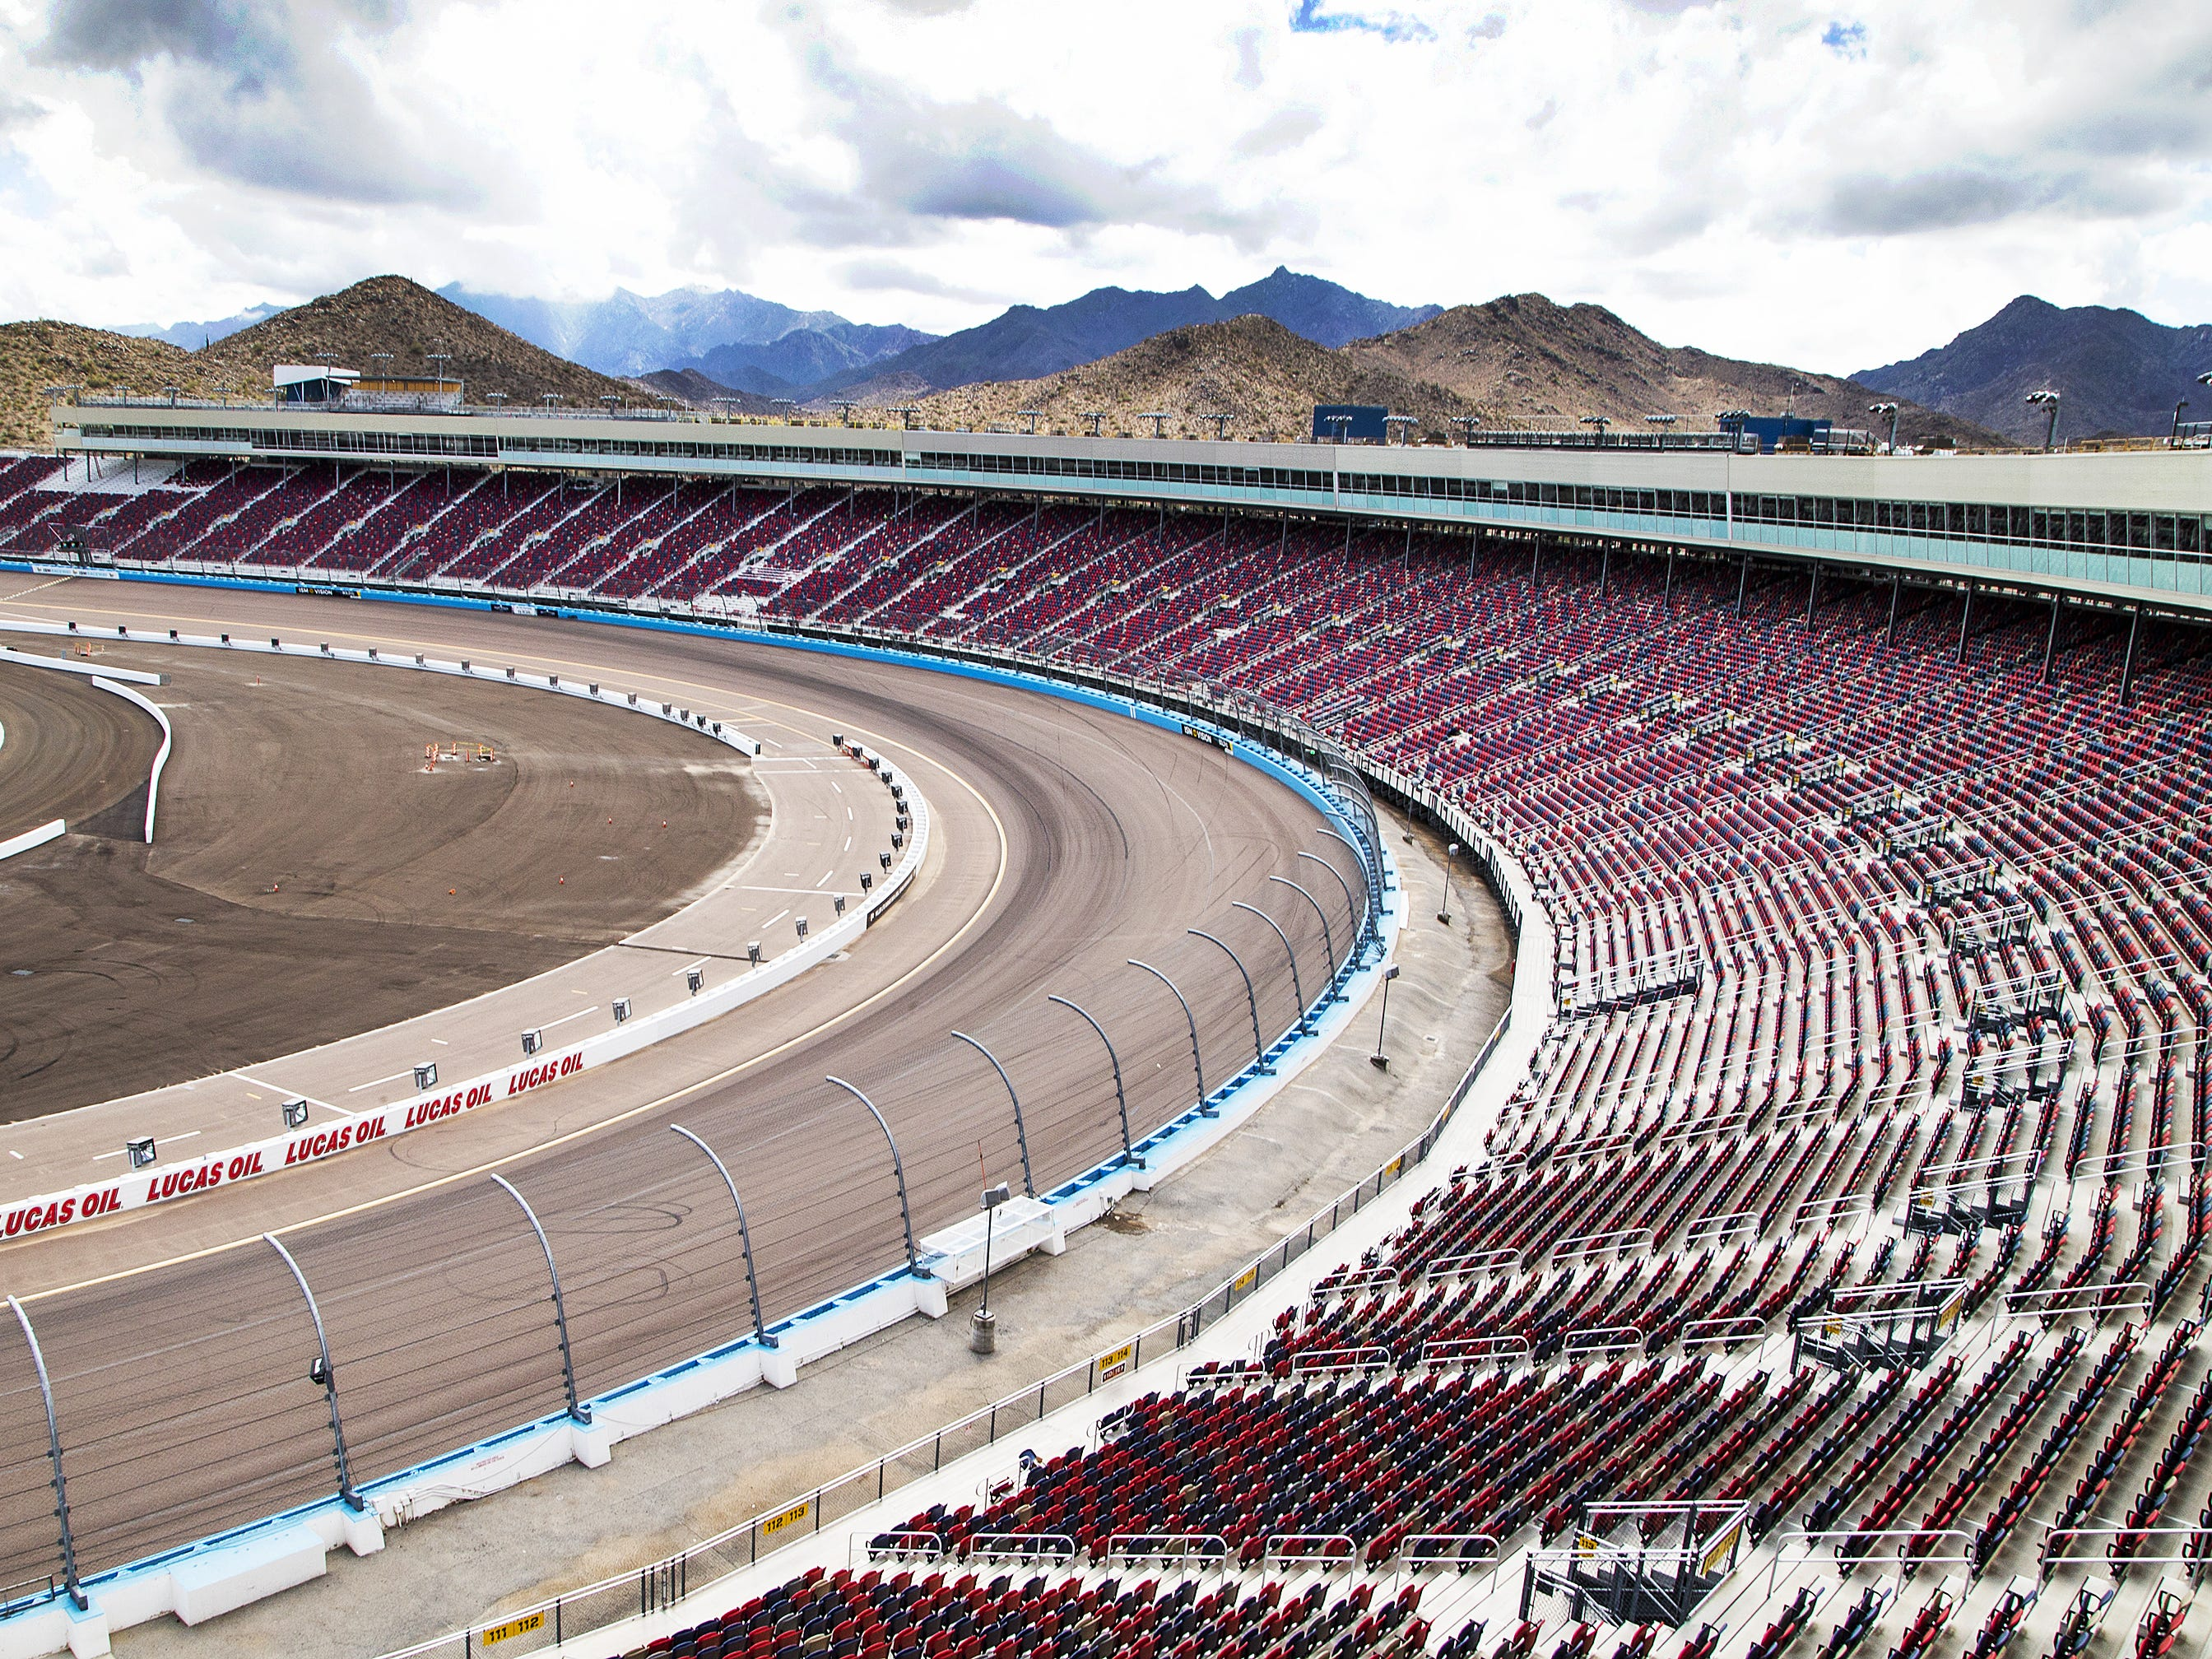 The track and the bleachers have been completely rebuilt as part of the renovation of ISM Raceway in Phoenix . Final touches are being made in the massive renovation of the former Phoenix International Raceway, Wednesday, October 3, 2018.